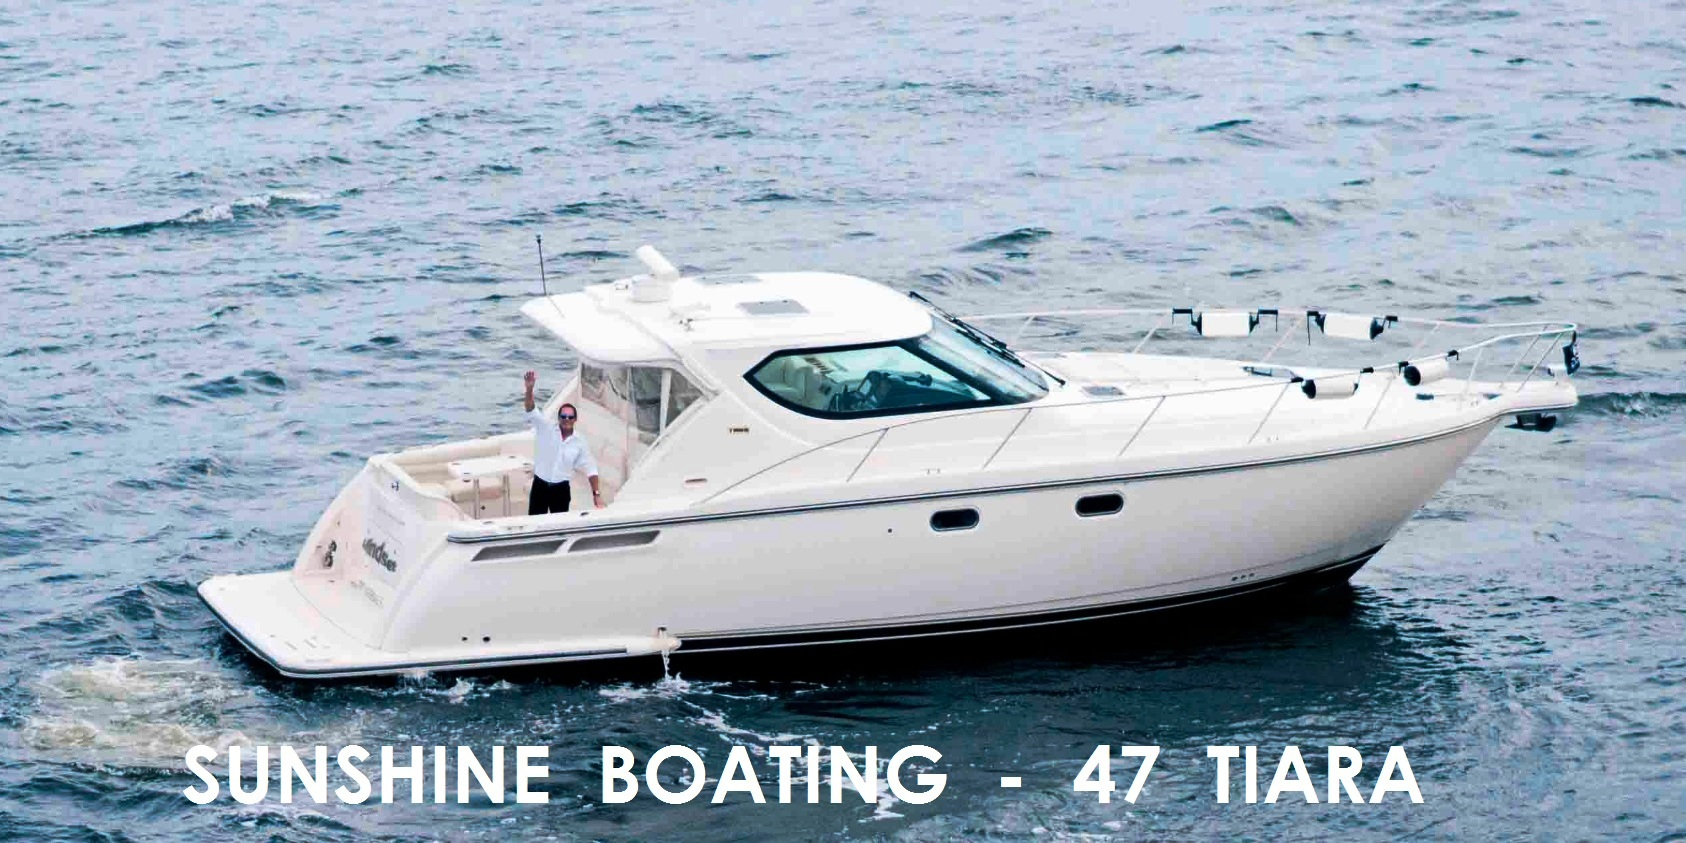 sunshine-boating-47-tiara-8